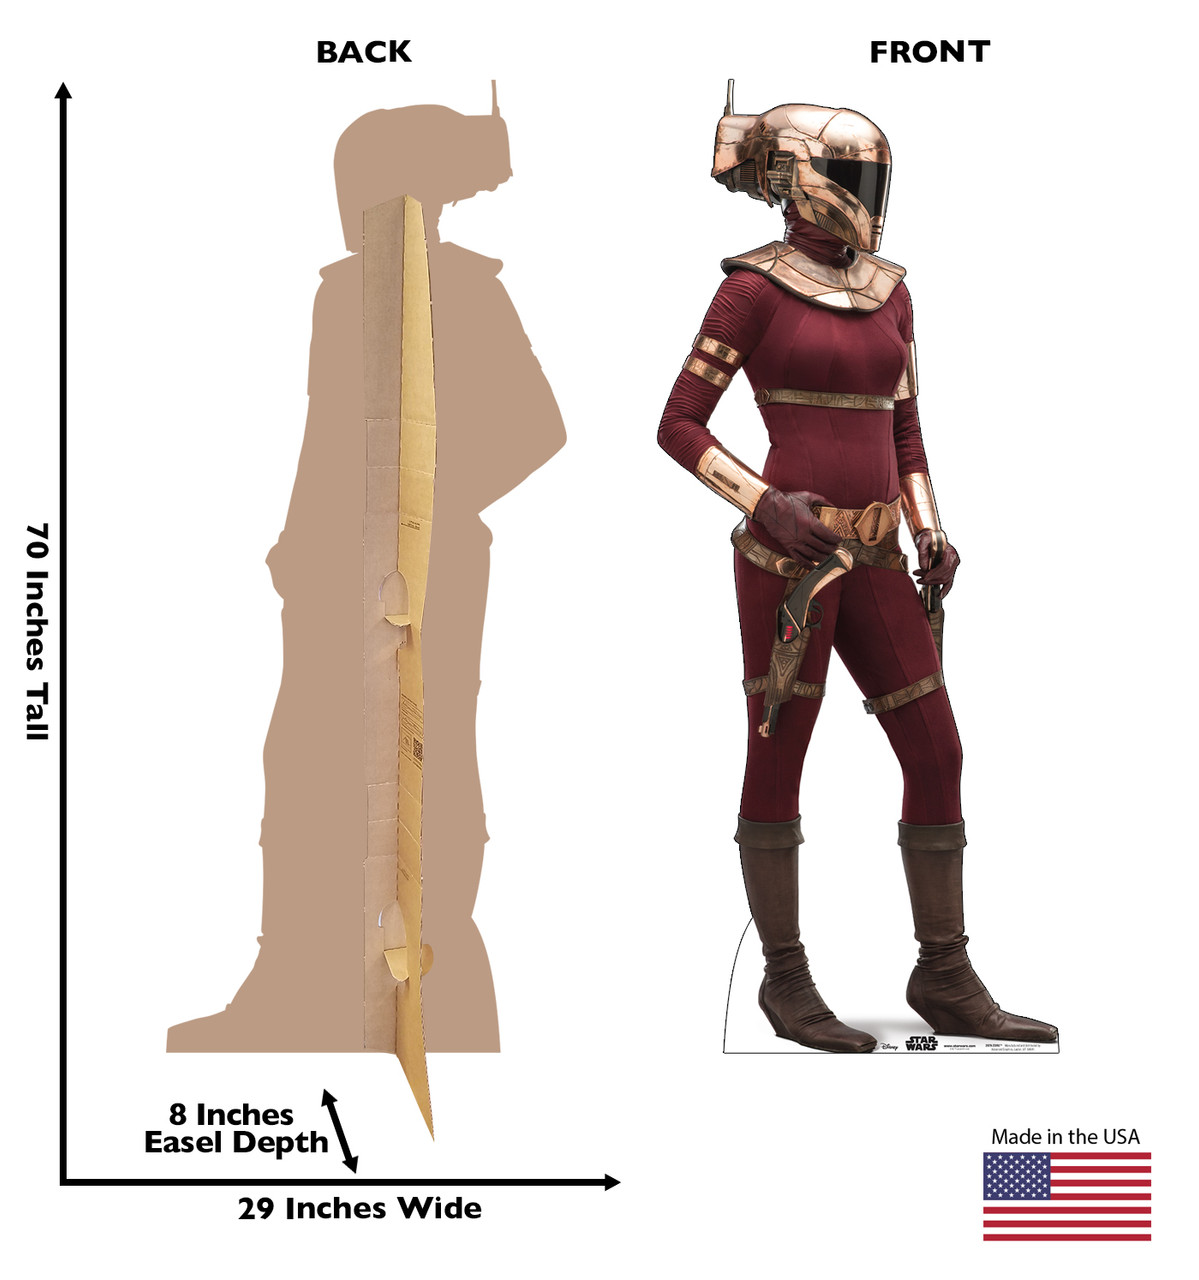 Life-size cardboard standee of Zorii™ (Star Wars IX) with back and front dimensions.